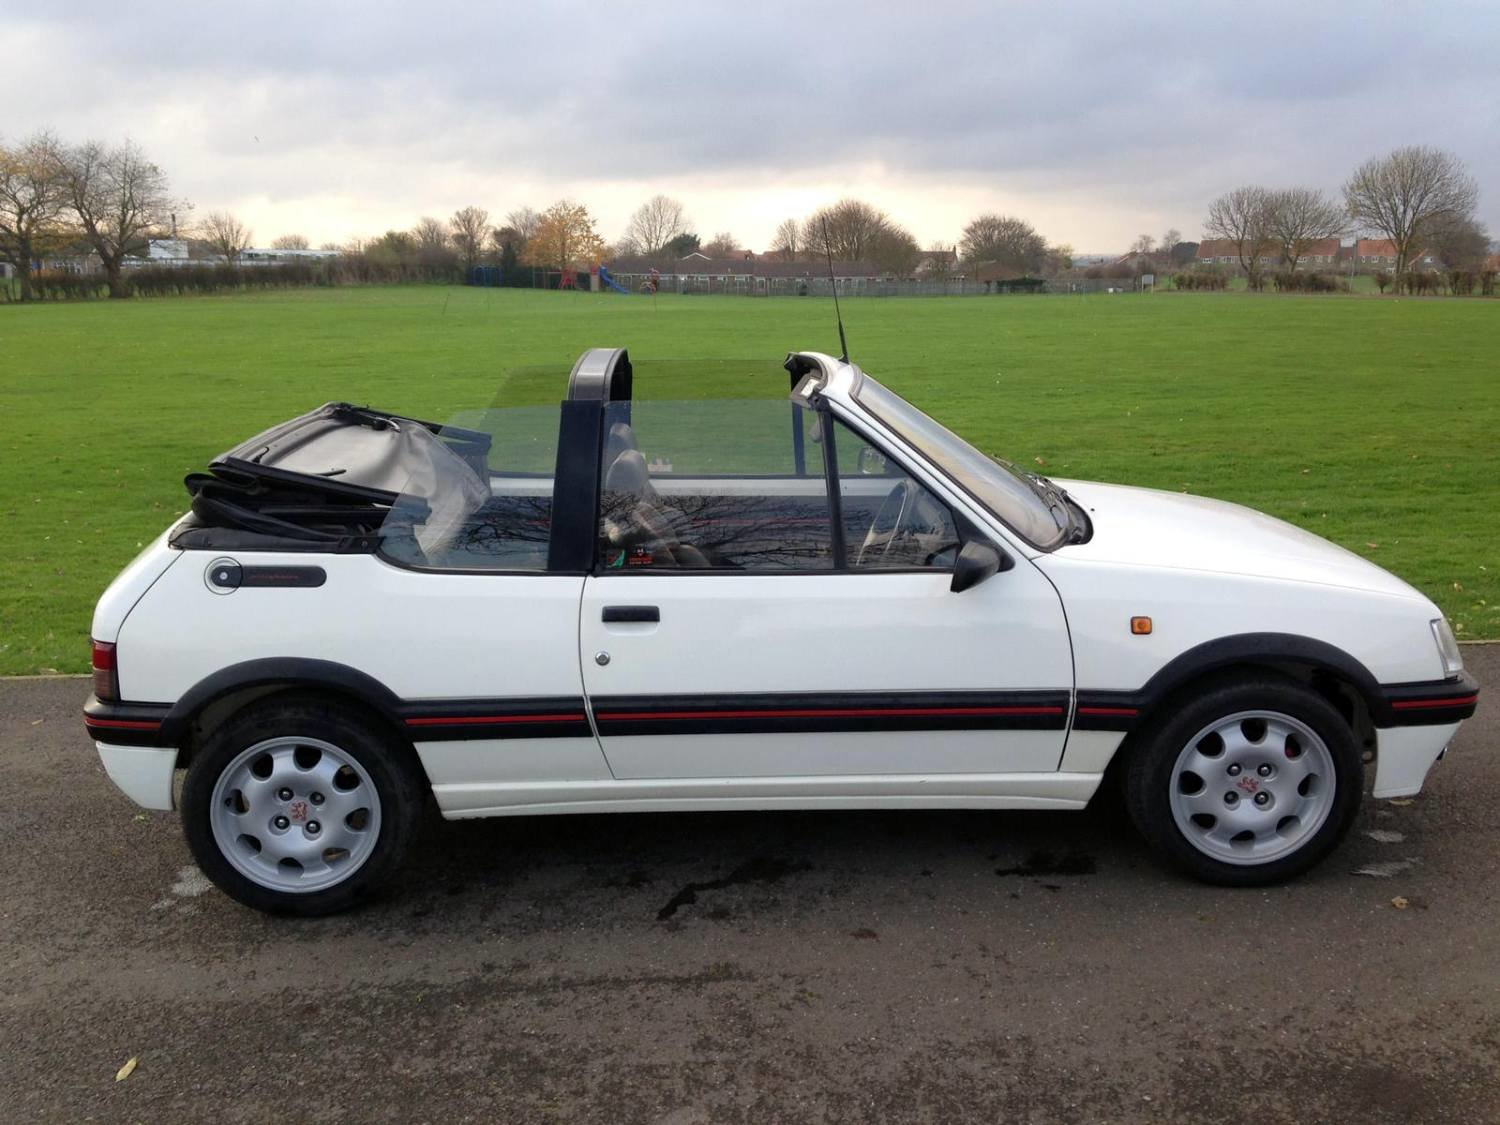 1992 Peugeot Cabriolet CTI (GTI) 1.9L 5 speed man For Sale (picture 1 of 6)